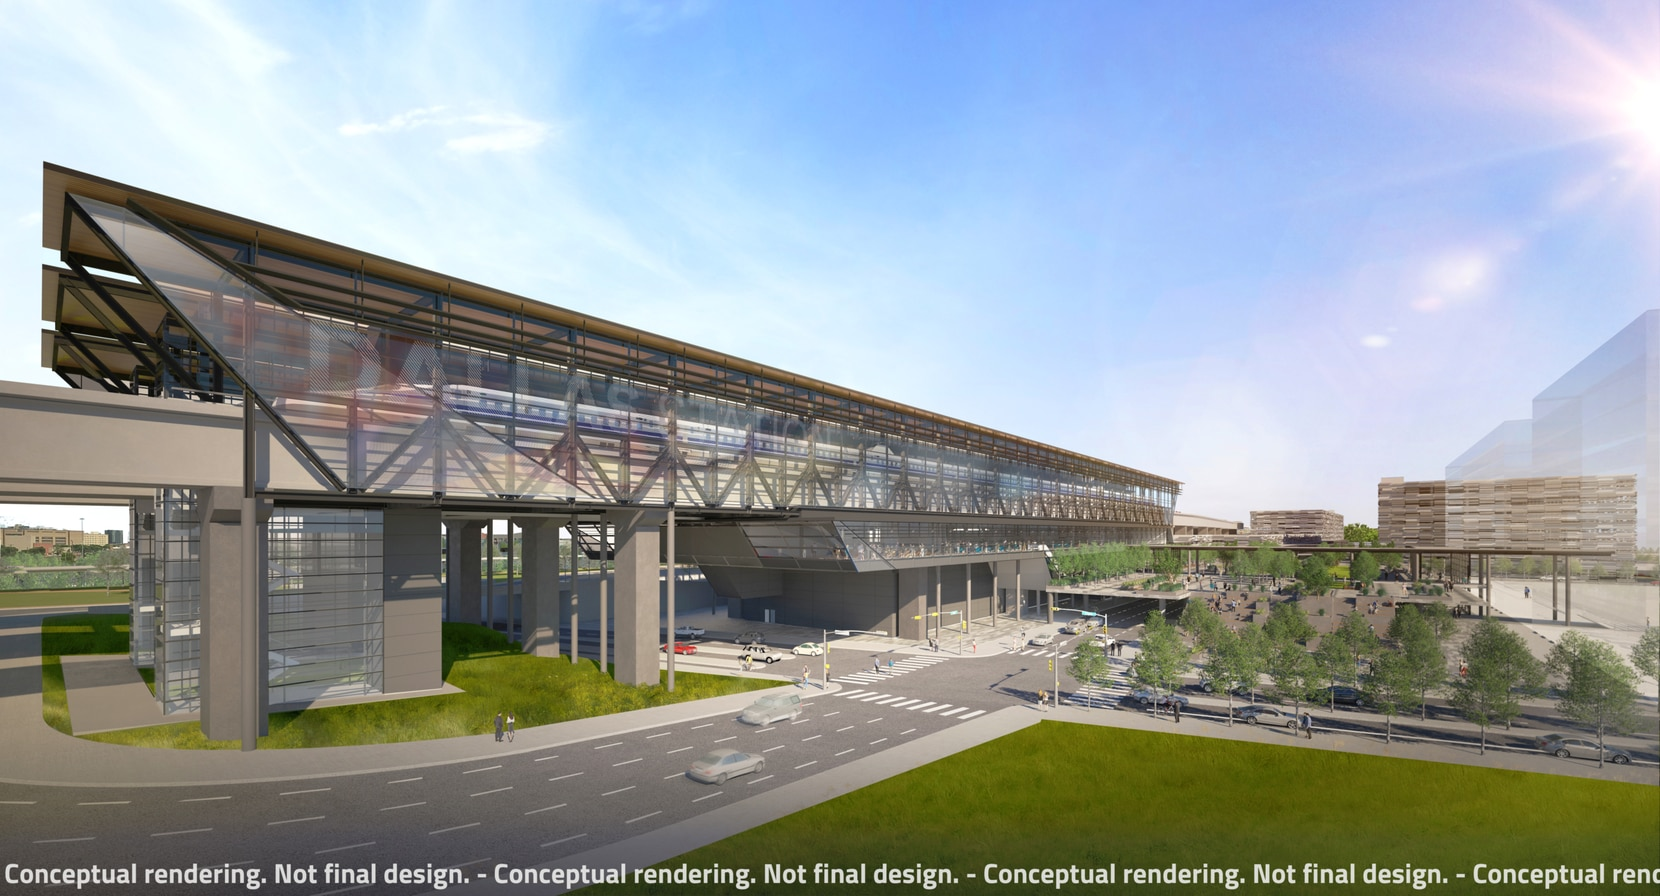 The Dallas station of the Texas high-speed rail system could look like this rendering.